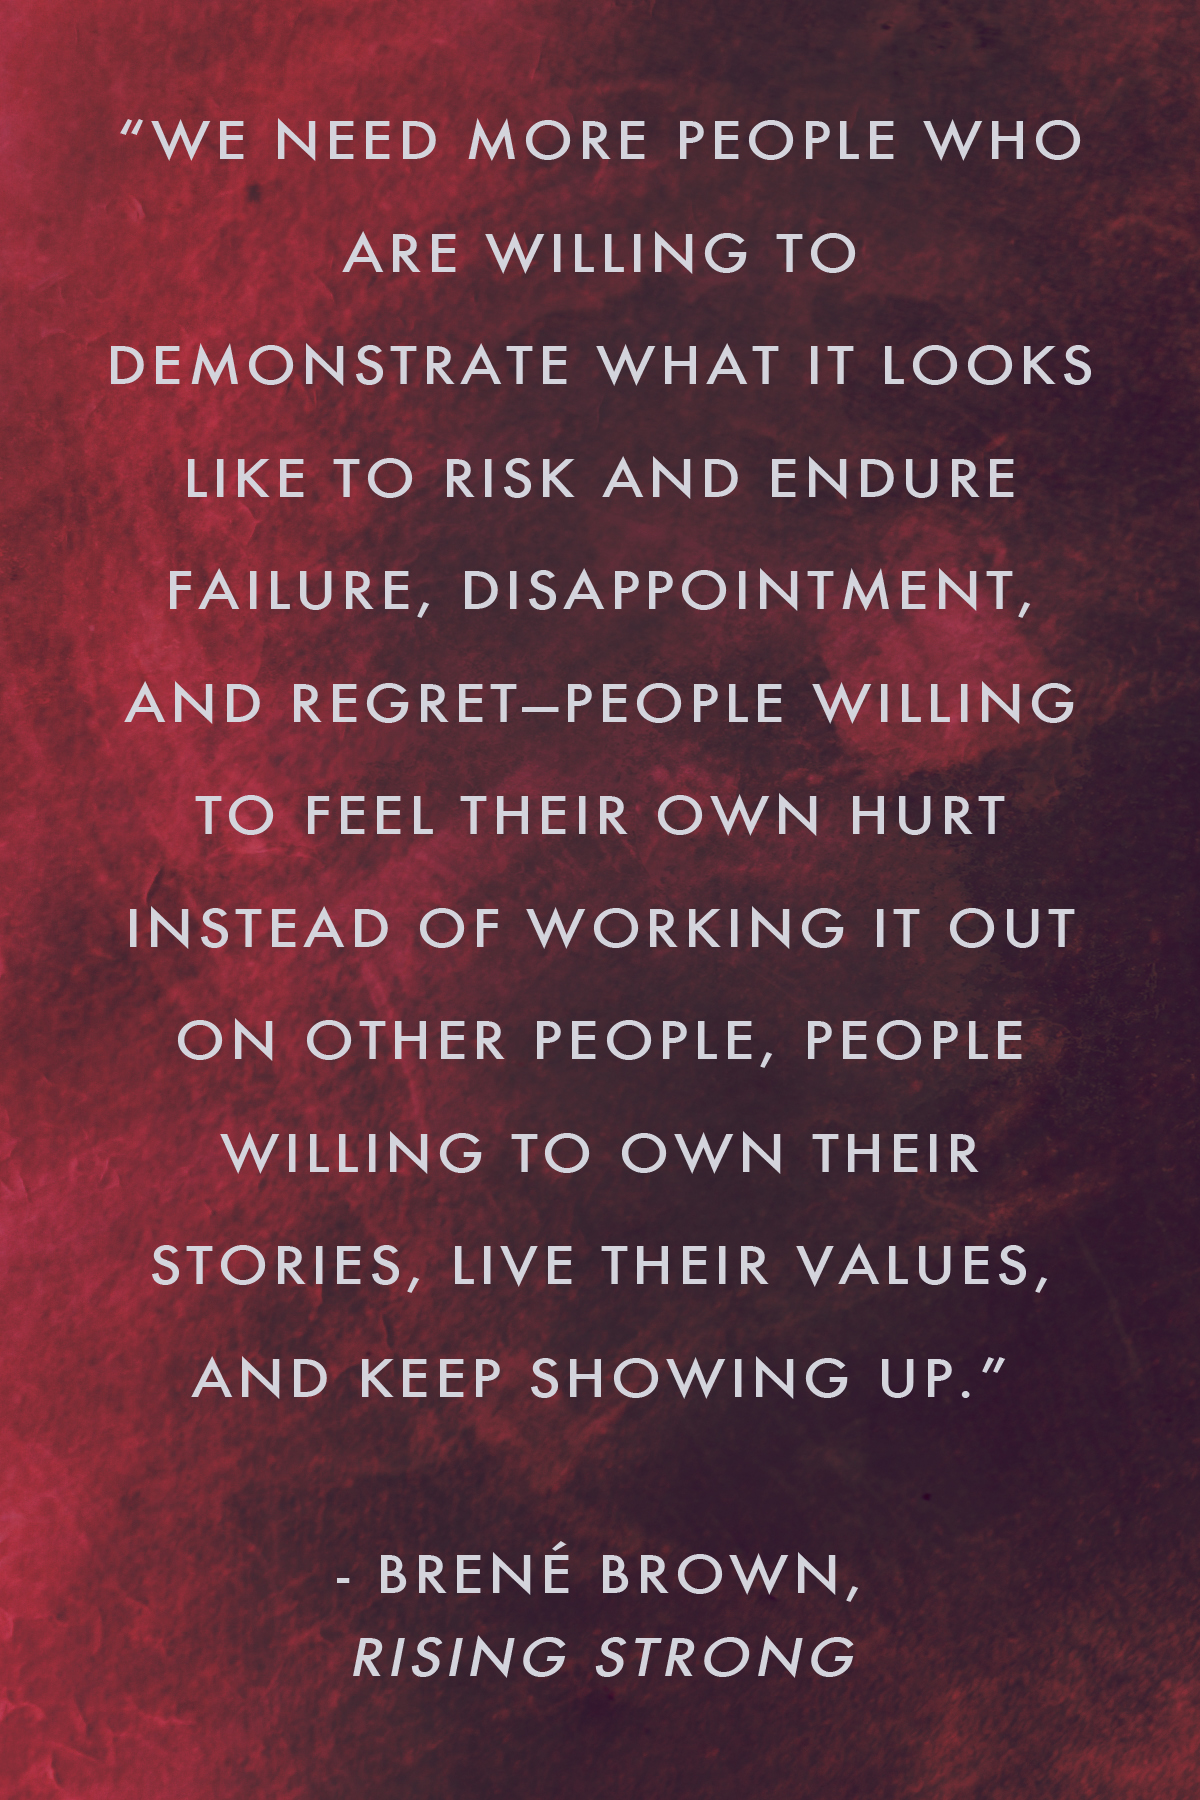 Brene Brown On Regret